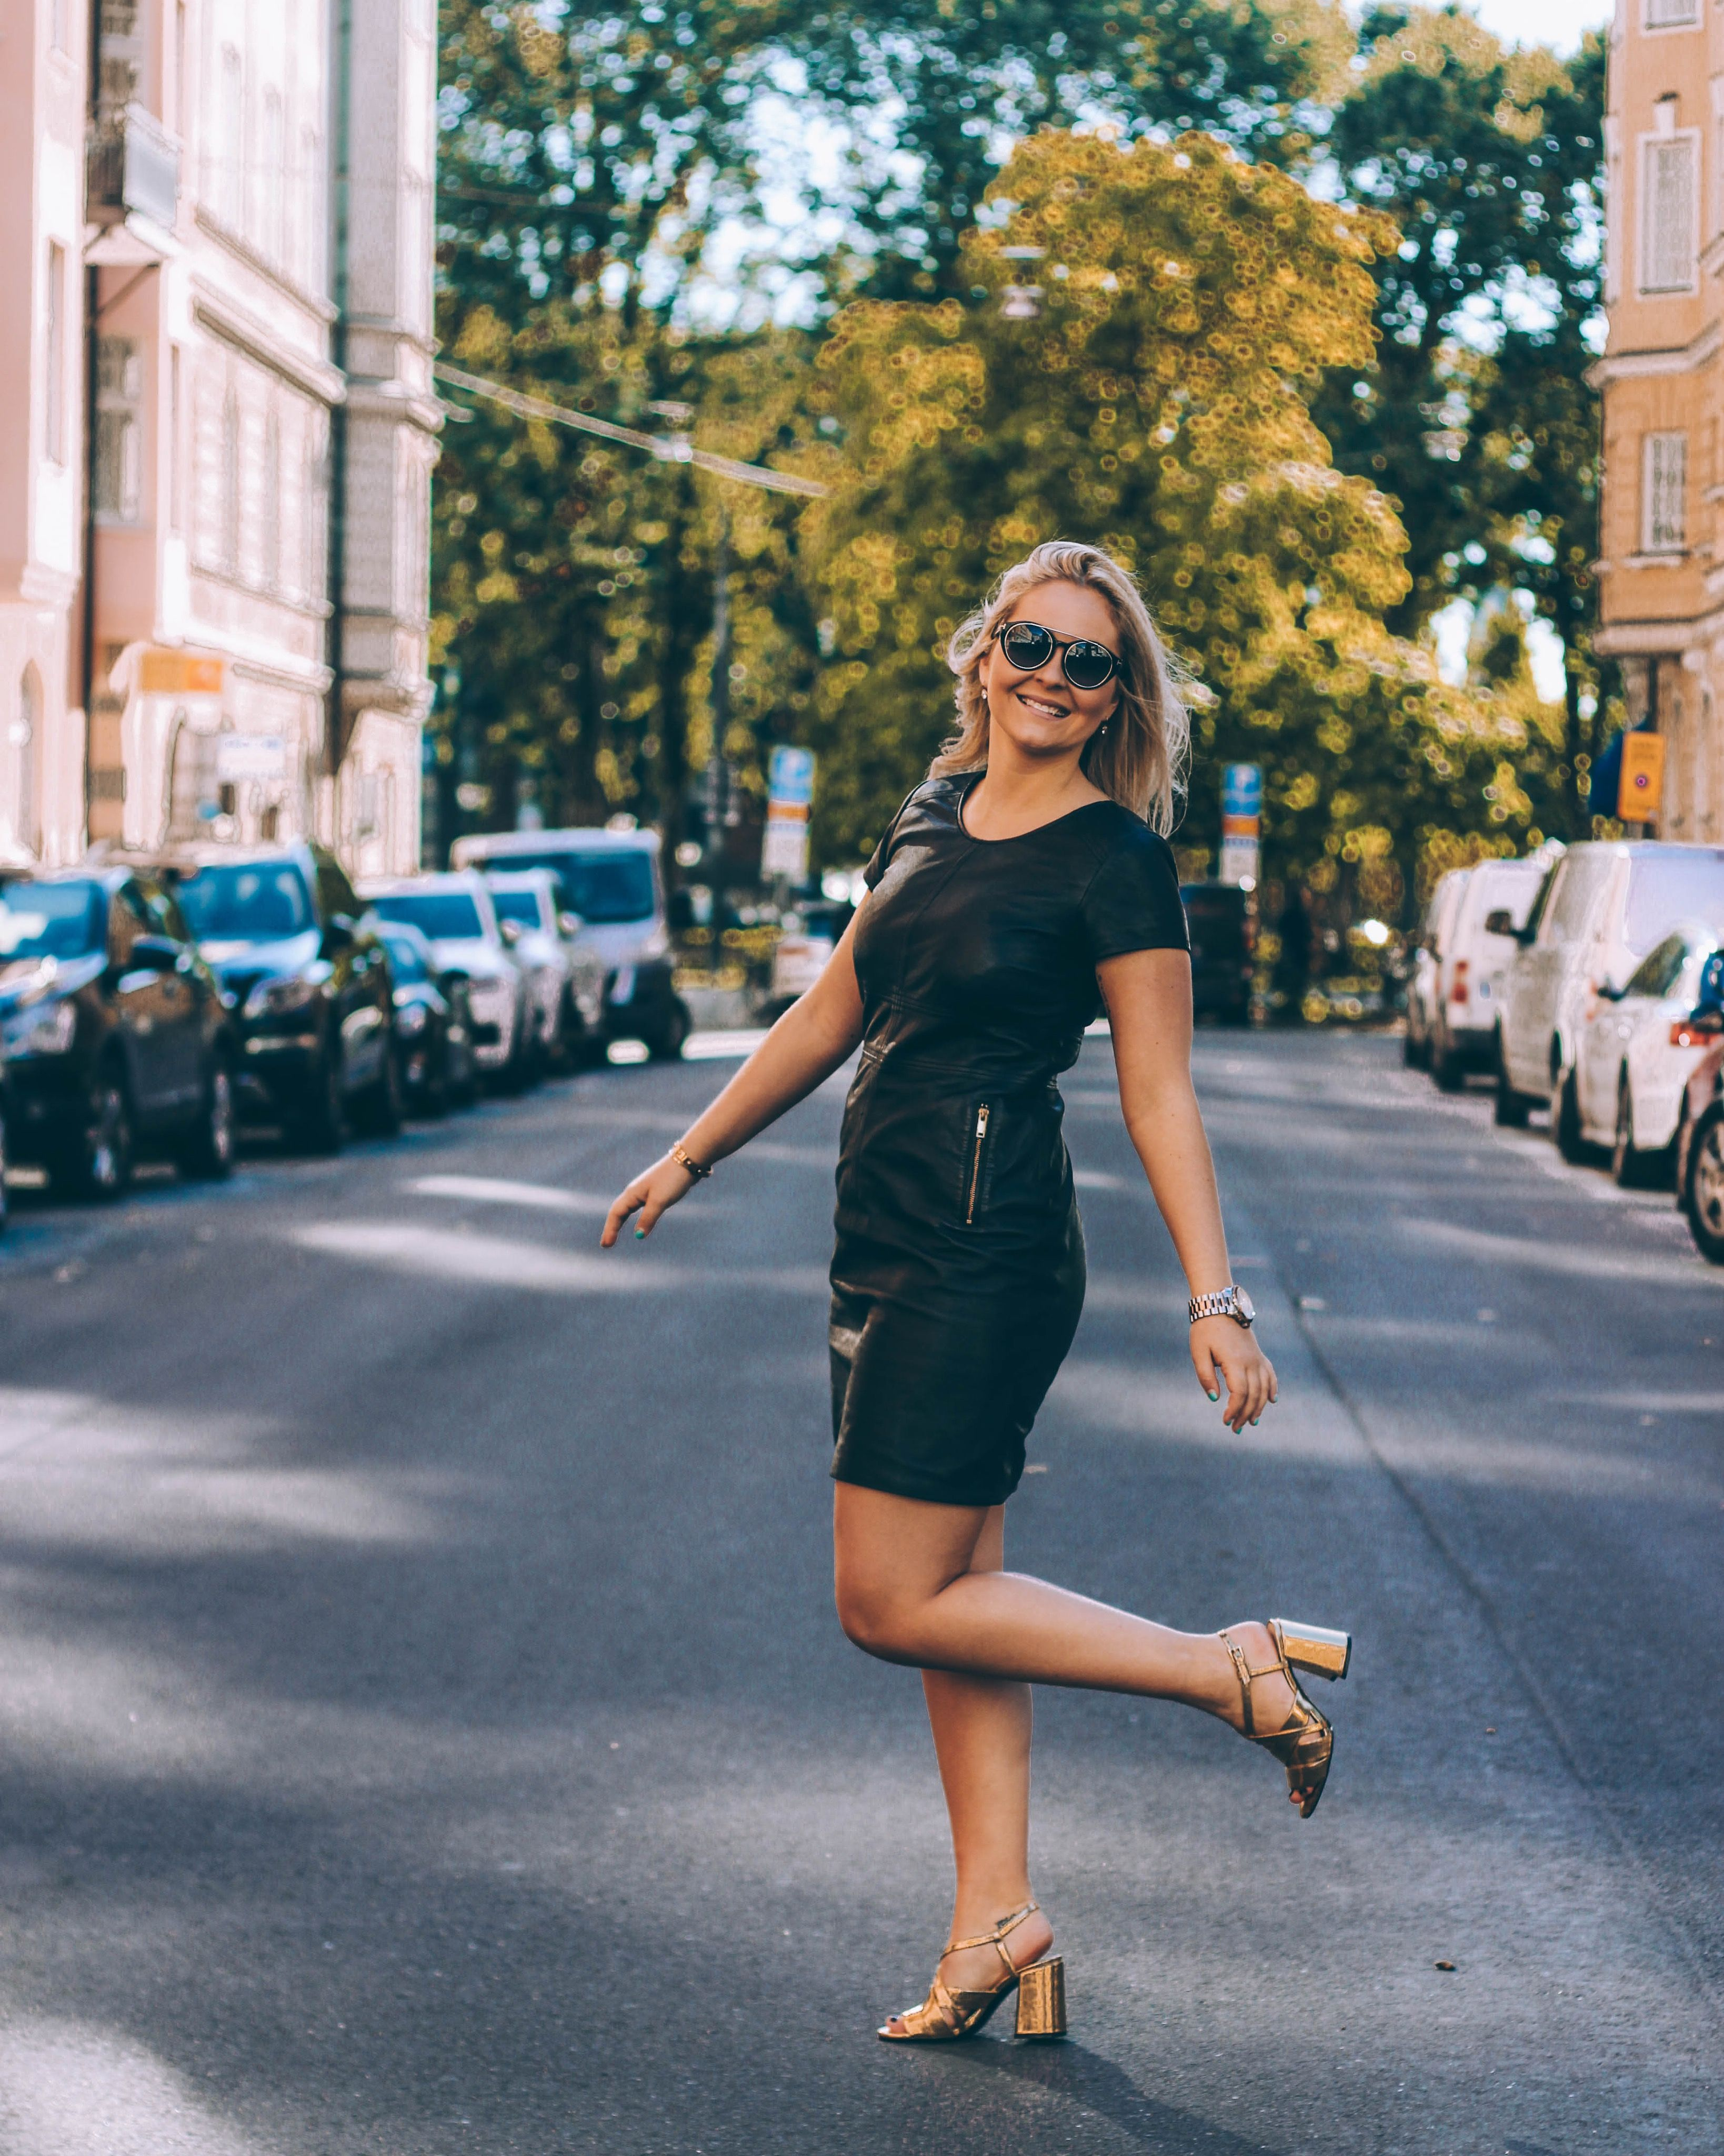 Leather dress with golden shoes